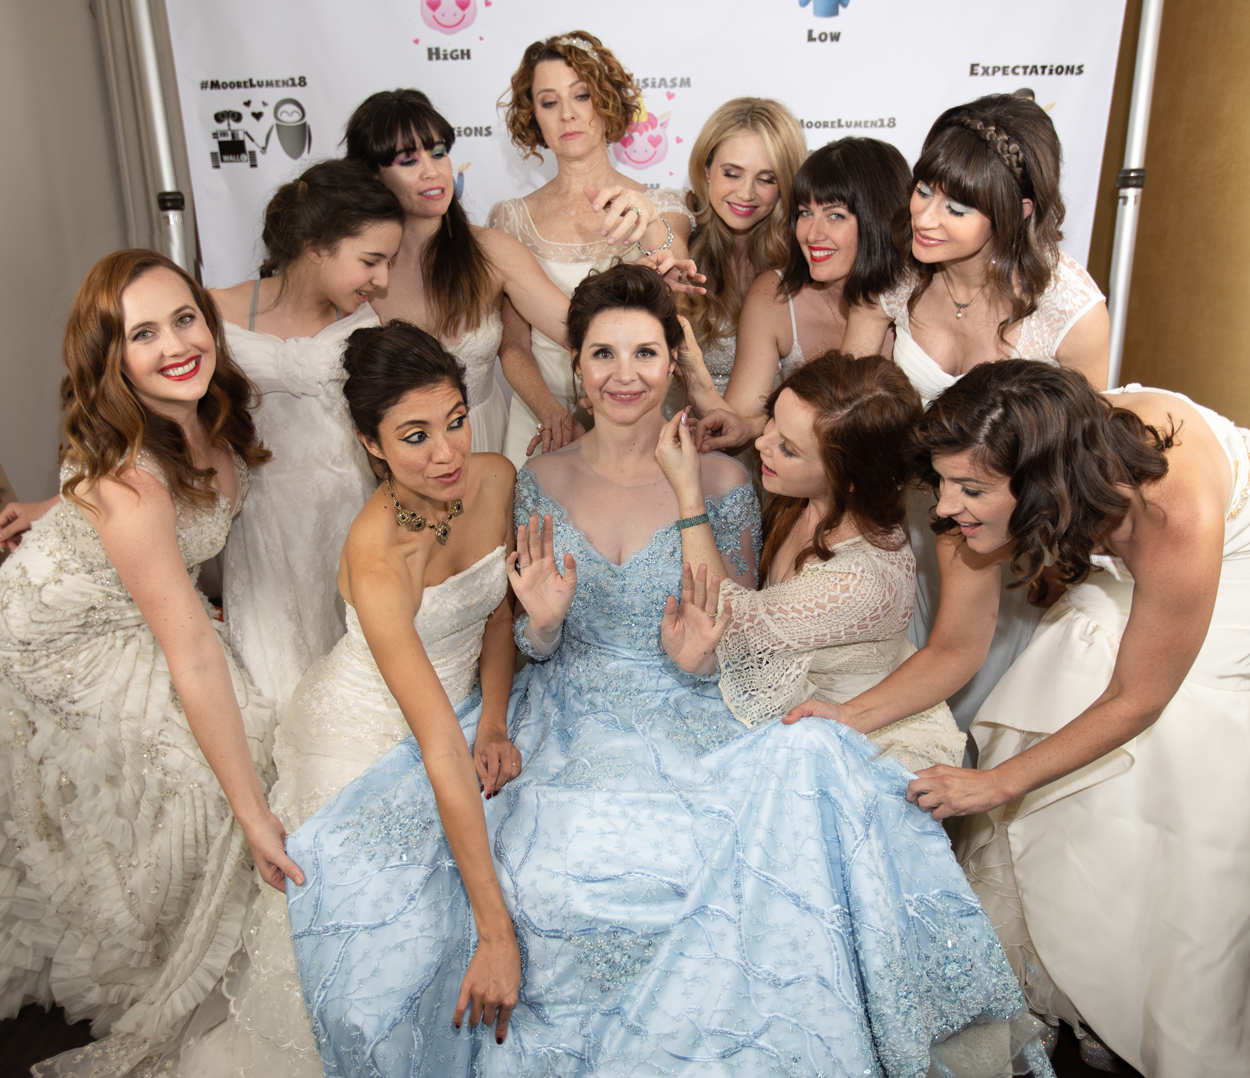 audrey moore and jeese lumen bride has guests wear wedding dresses to her wedding